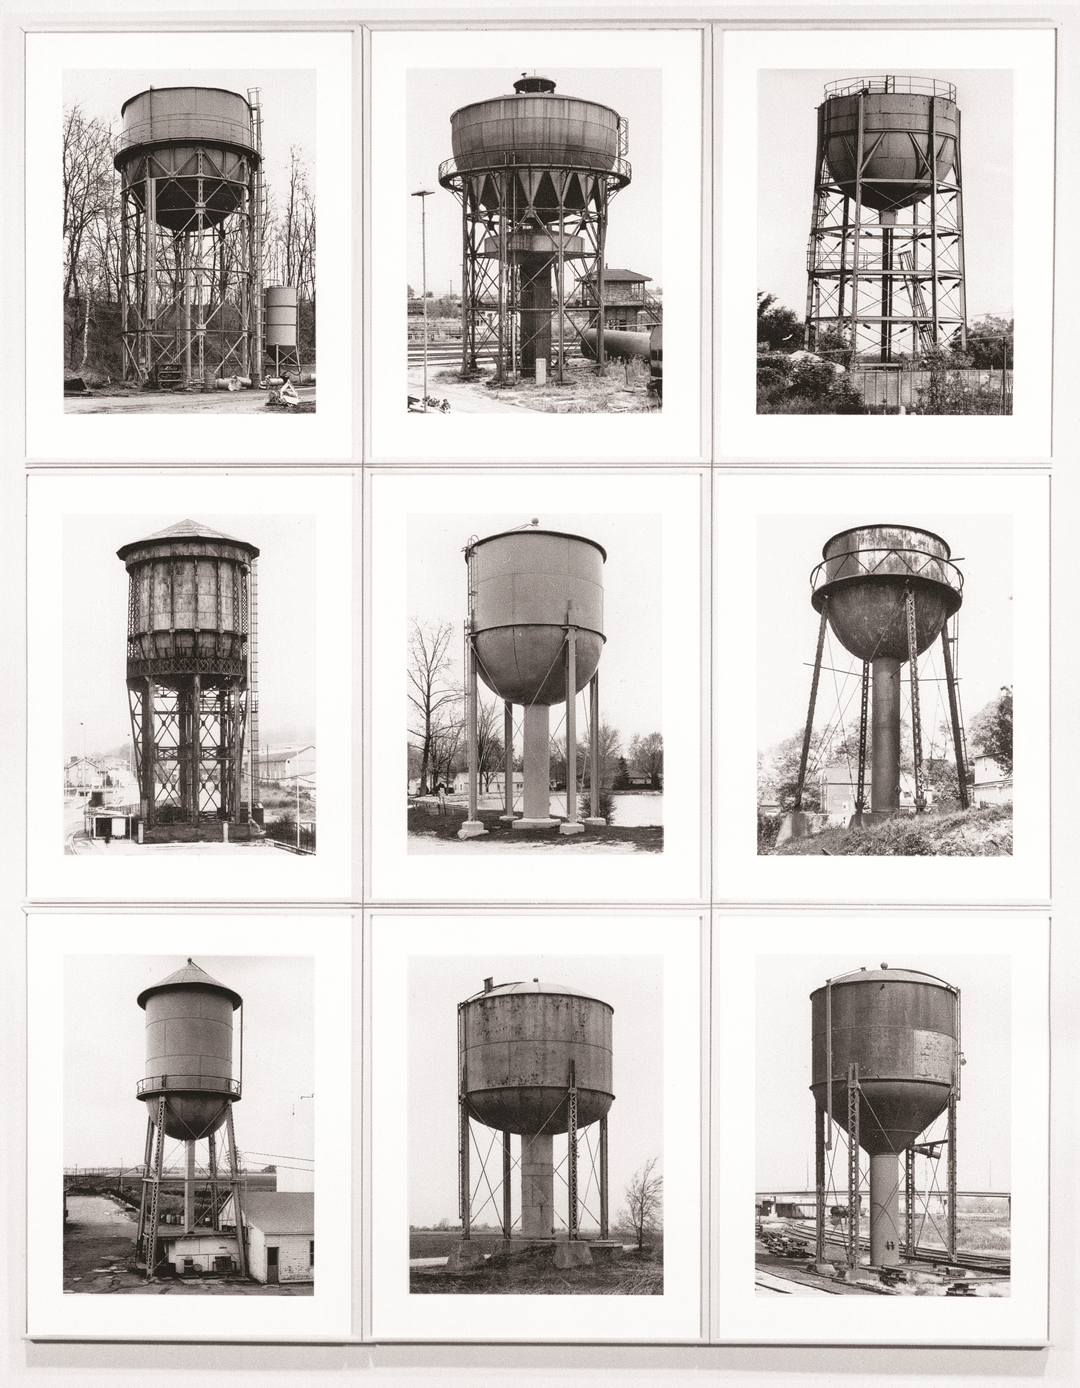 Bernd and Hilla Becher, Water Towers, 1980, as reproduced in Art as Therapy